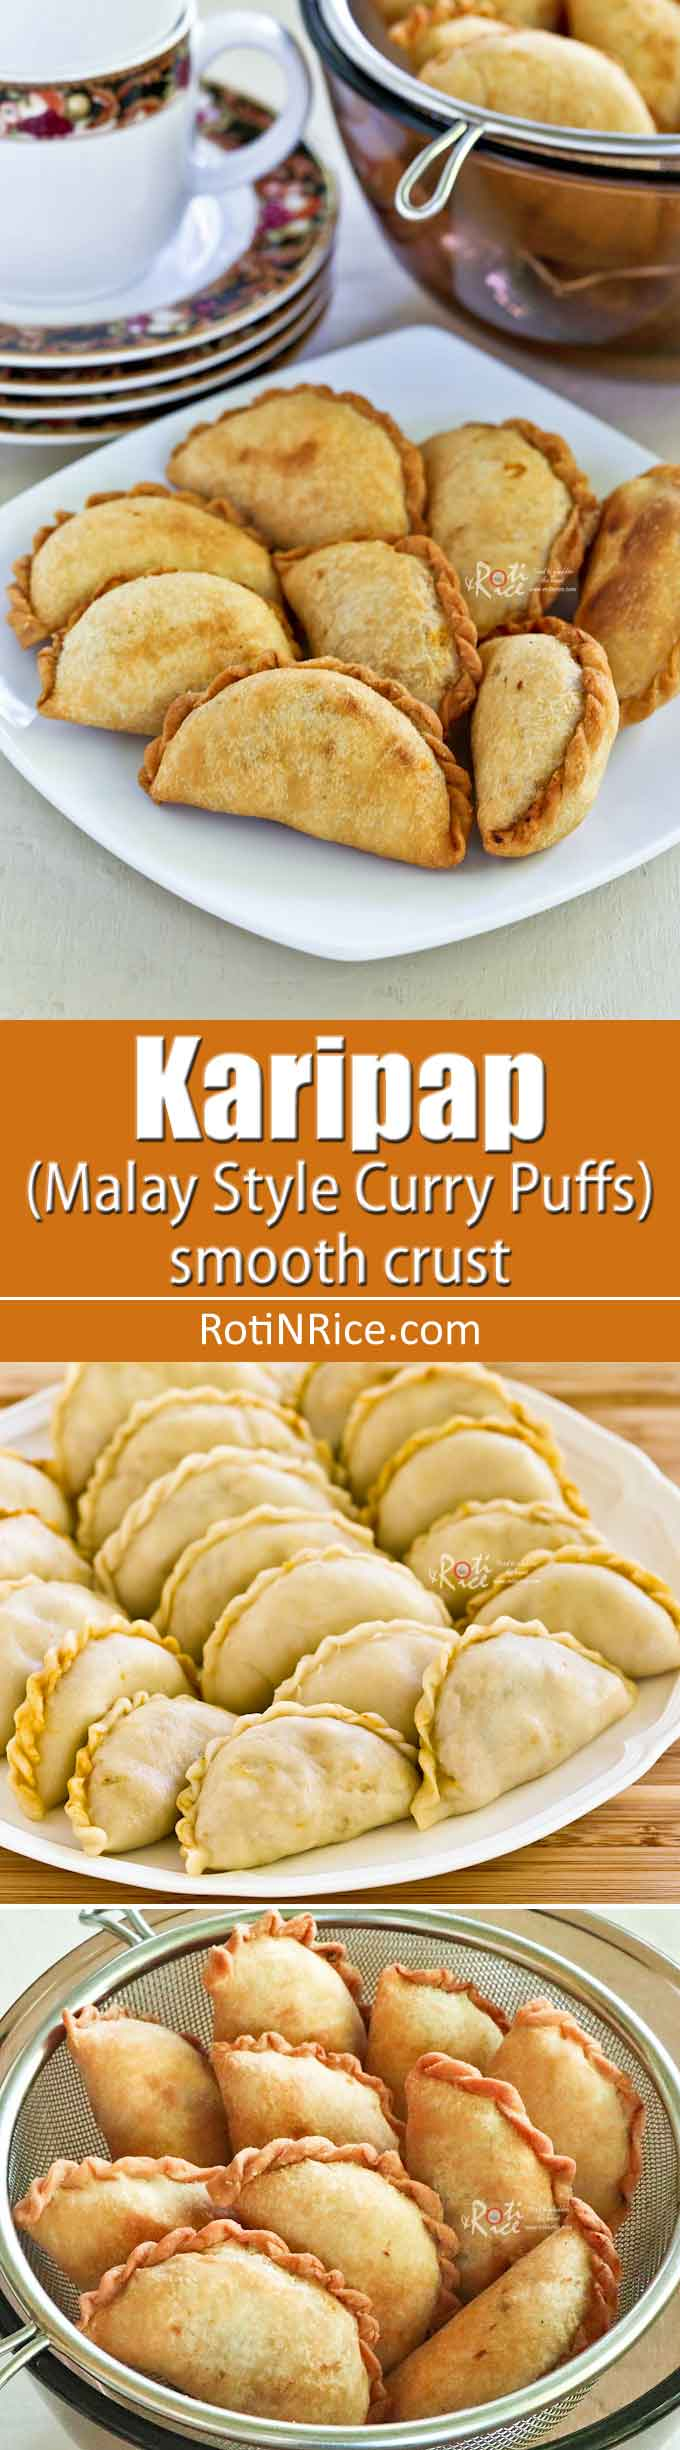 These vegetarian Karipap (Malay Style Curry Puffs) with curried potato filling are a popular Malaysian snack. This version comes with a smooth flaky crust. | RotiNRice.com